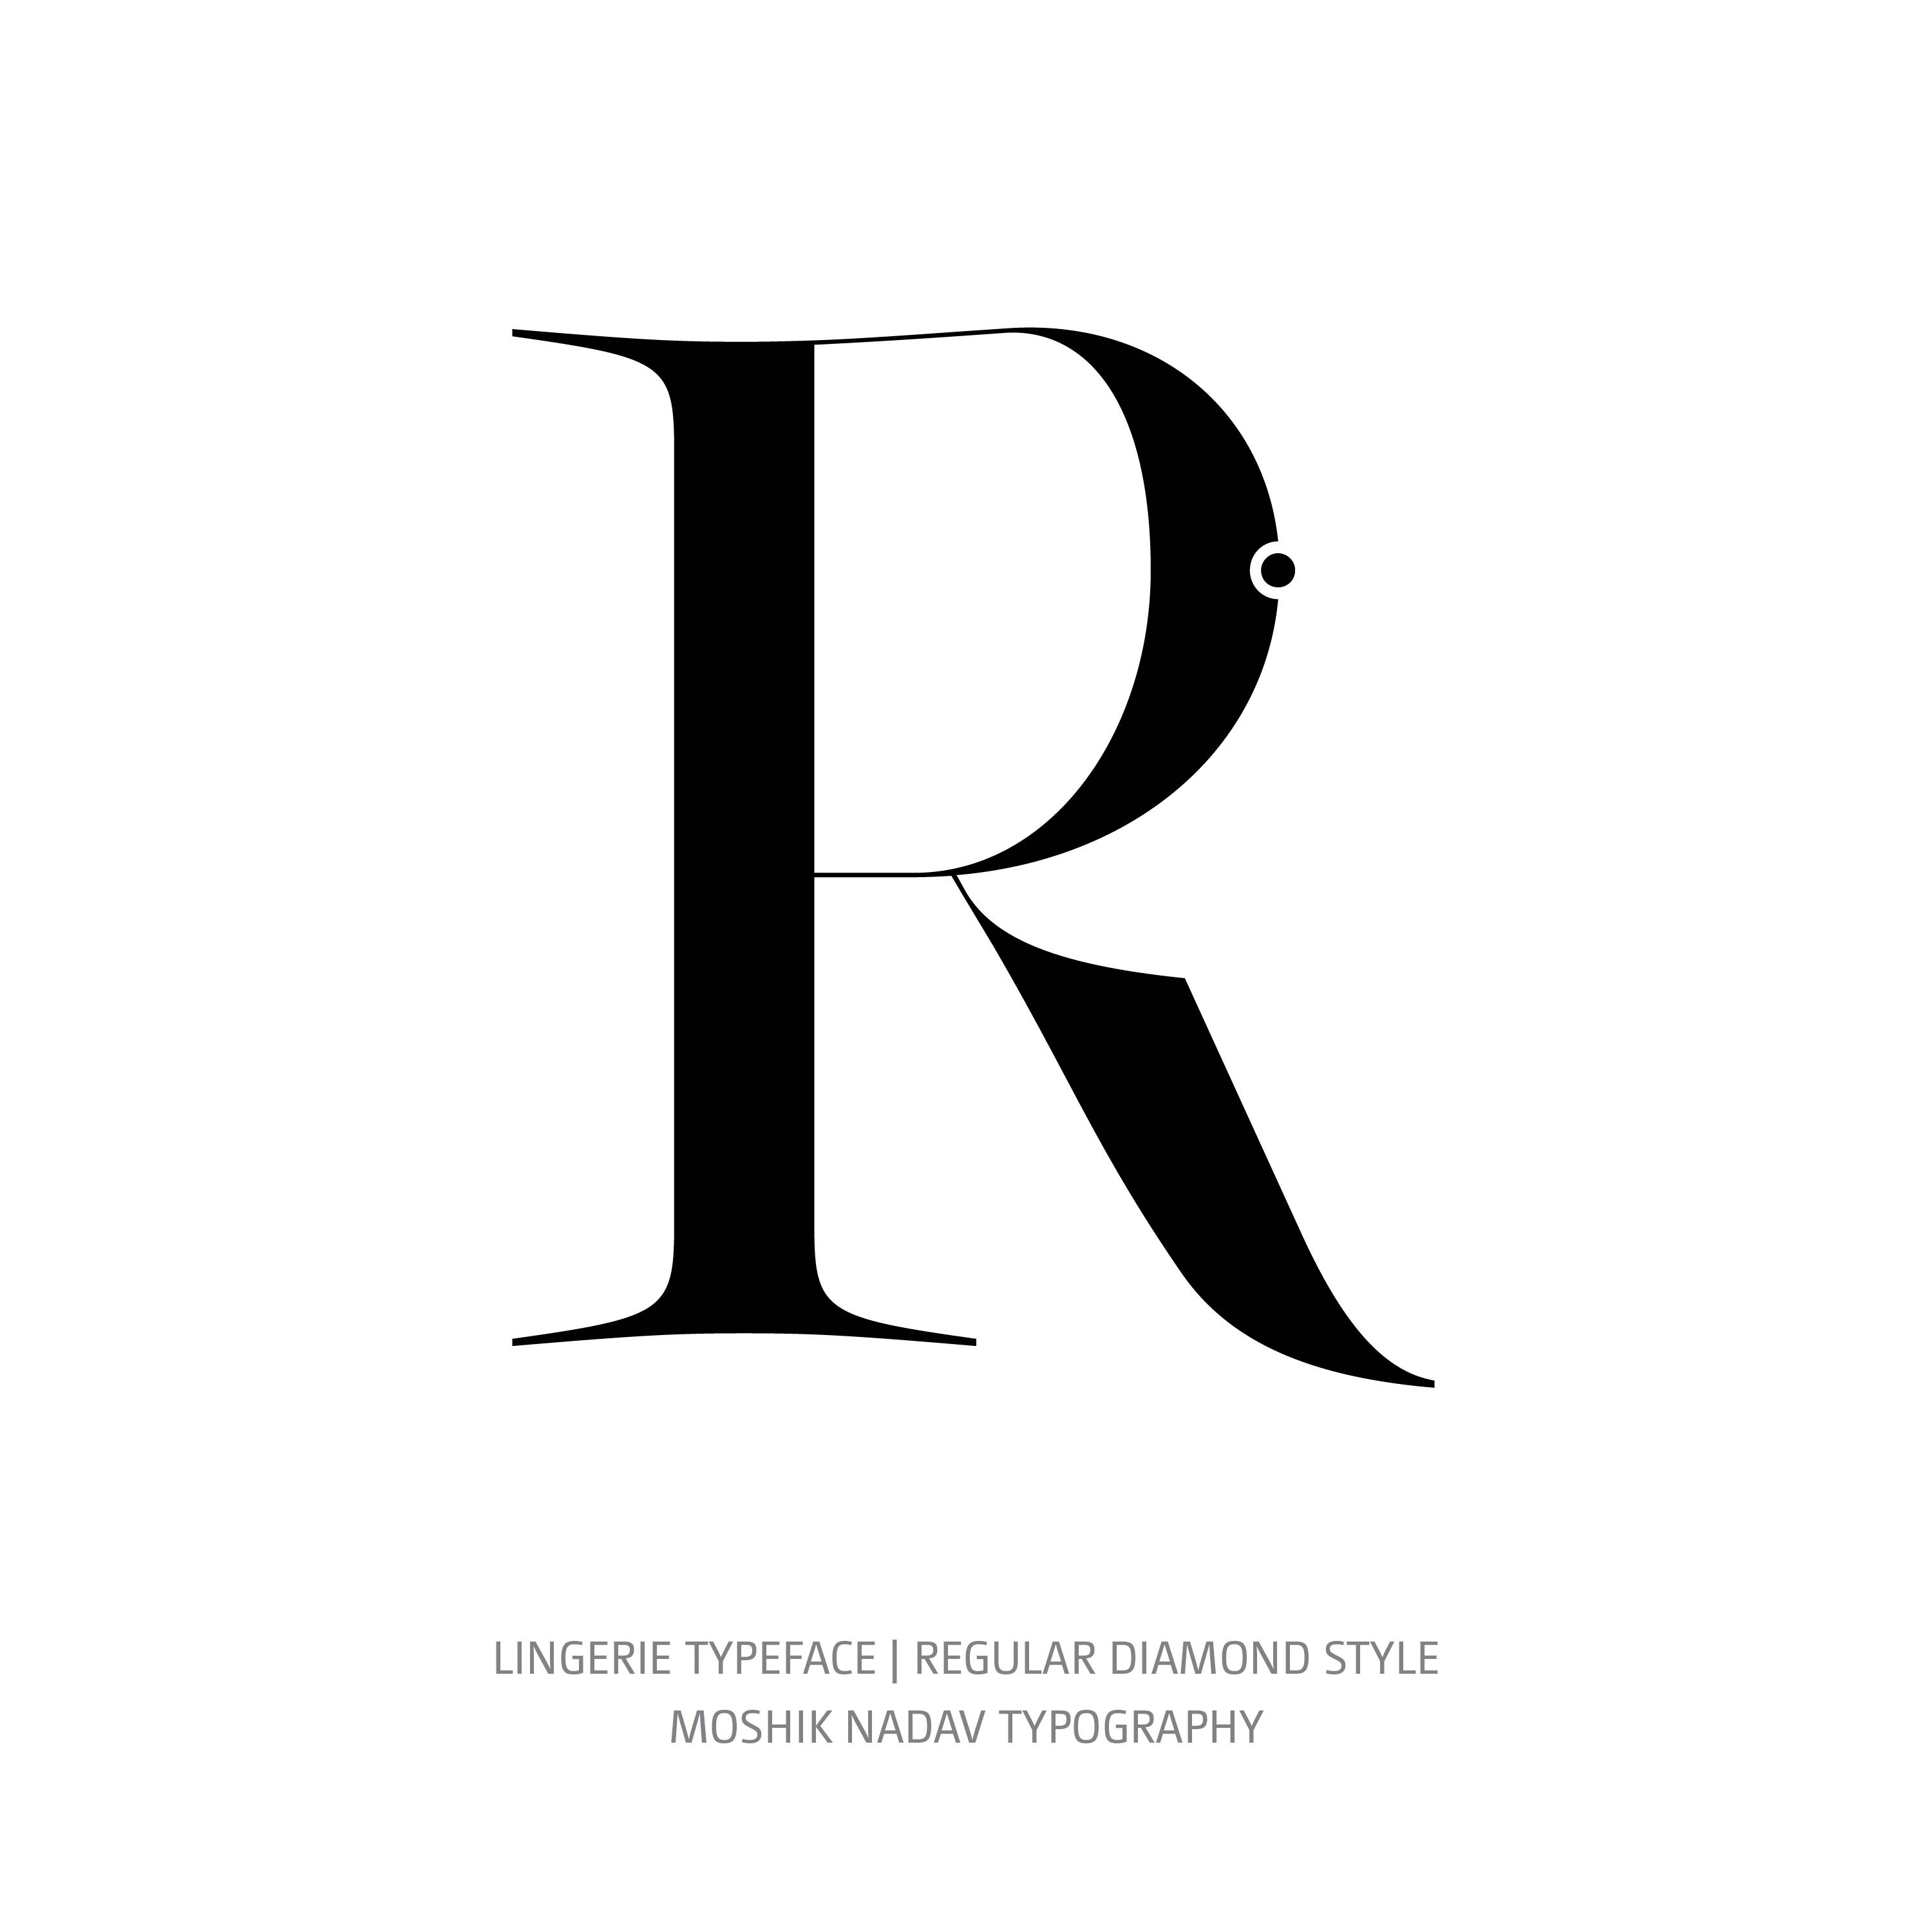 Lingerie Typeface Regular Diamond R